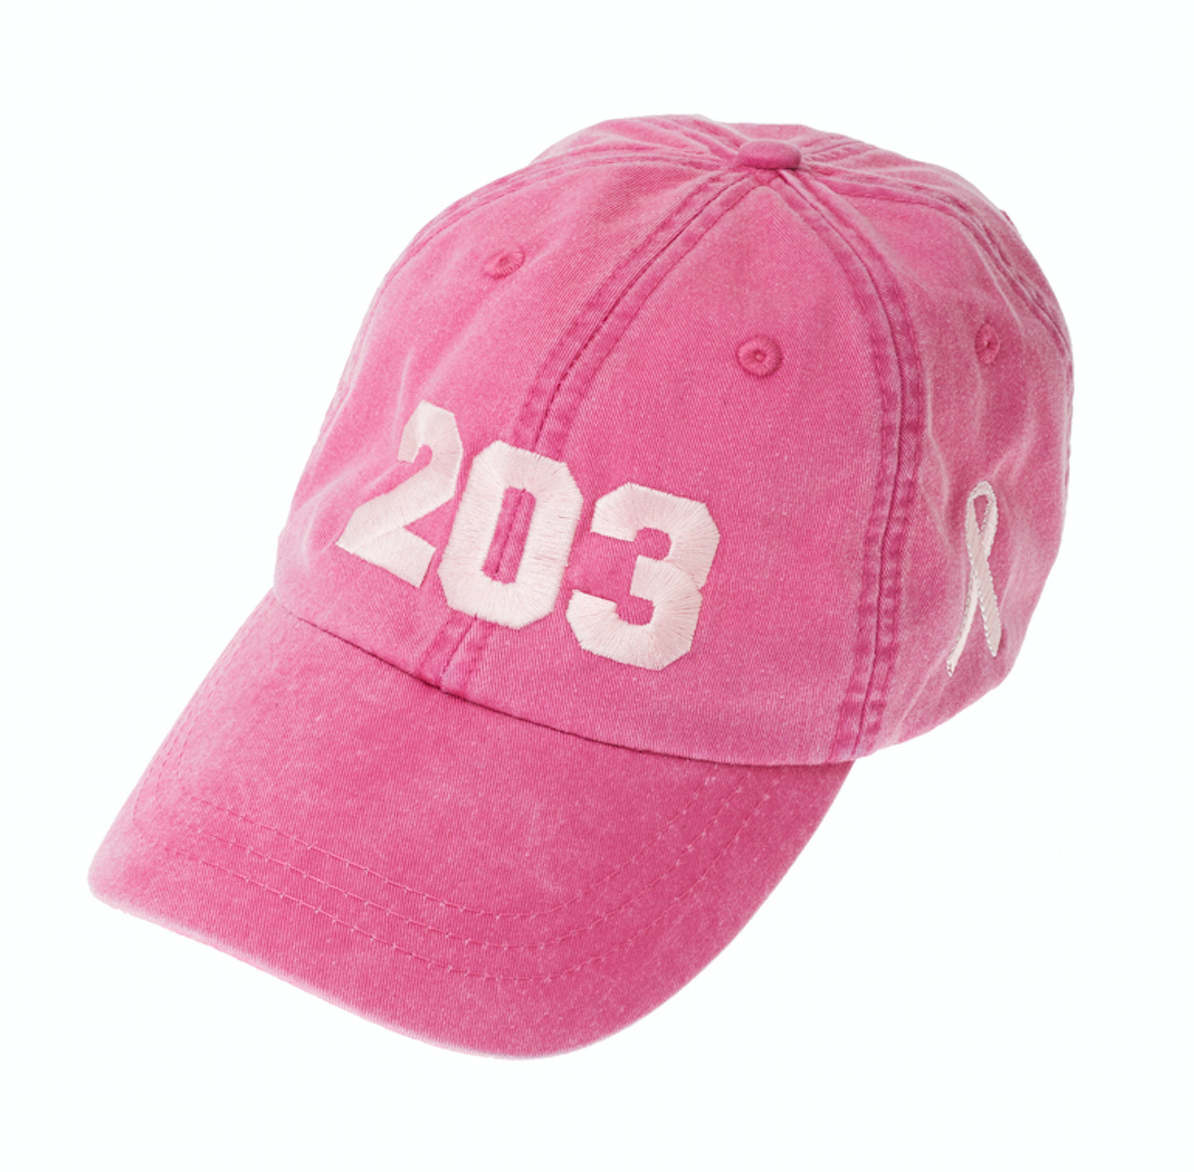 ... 203 Breast Cancer Awareness Cap '18 - The Two Oh Three ...